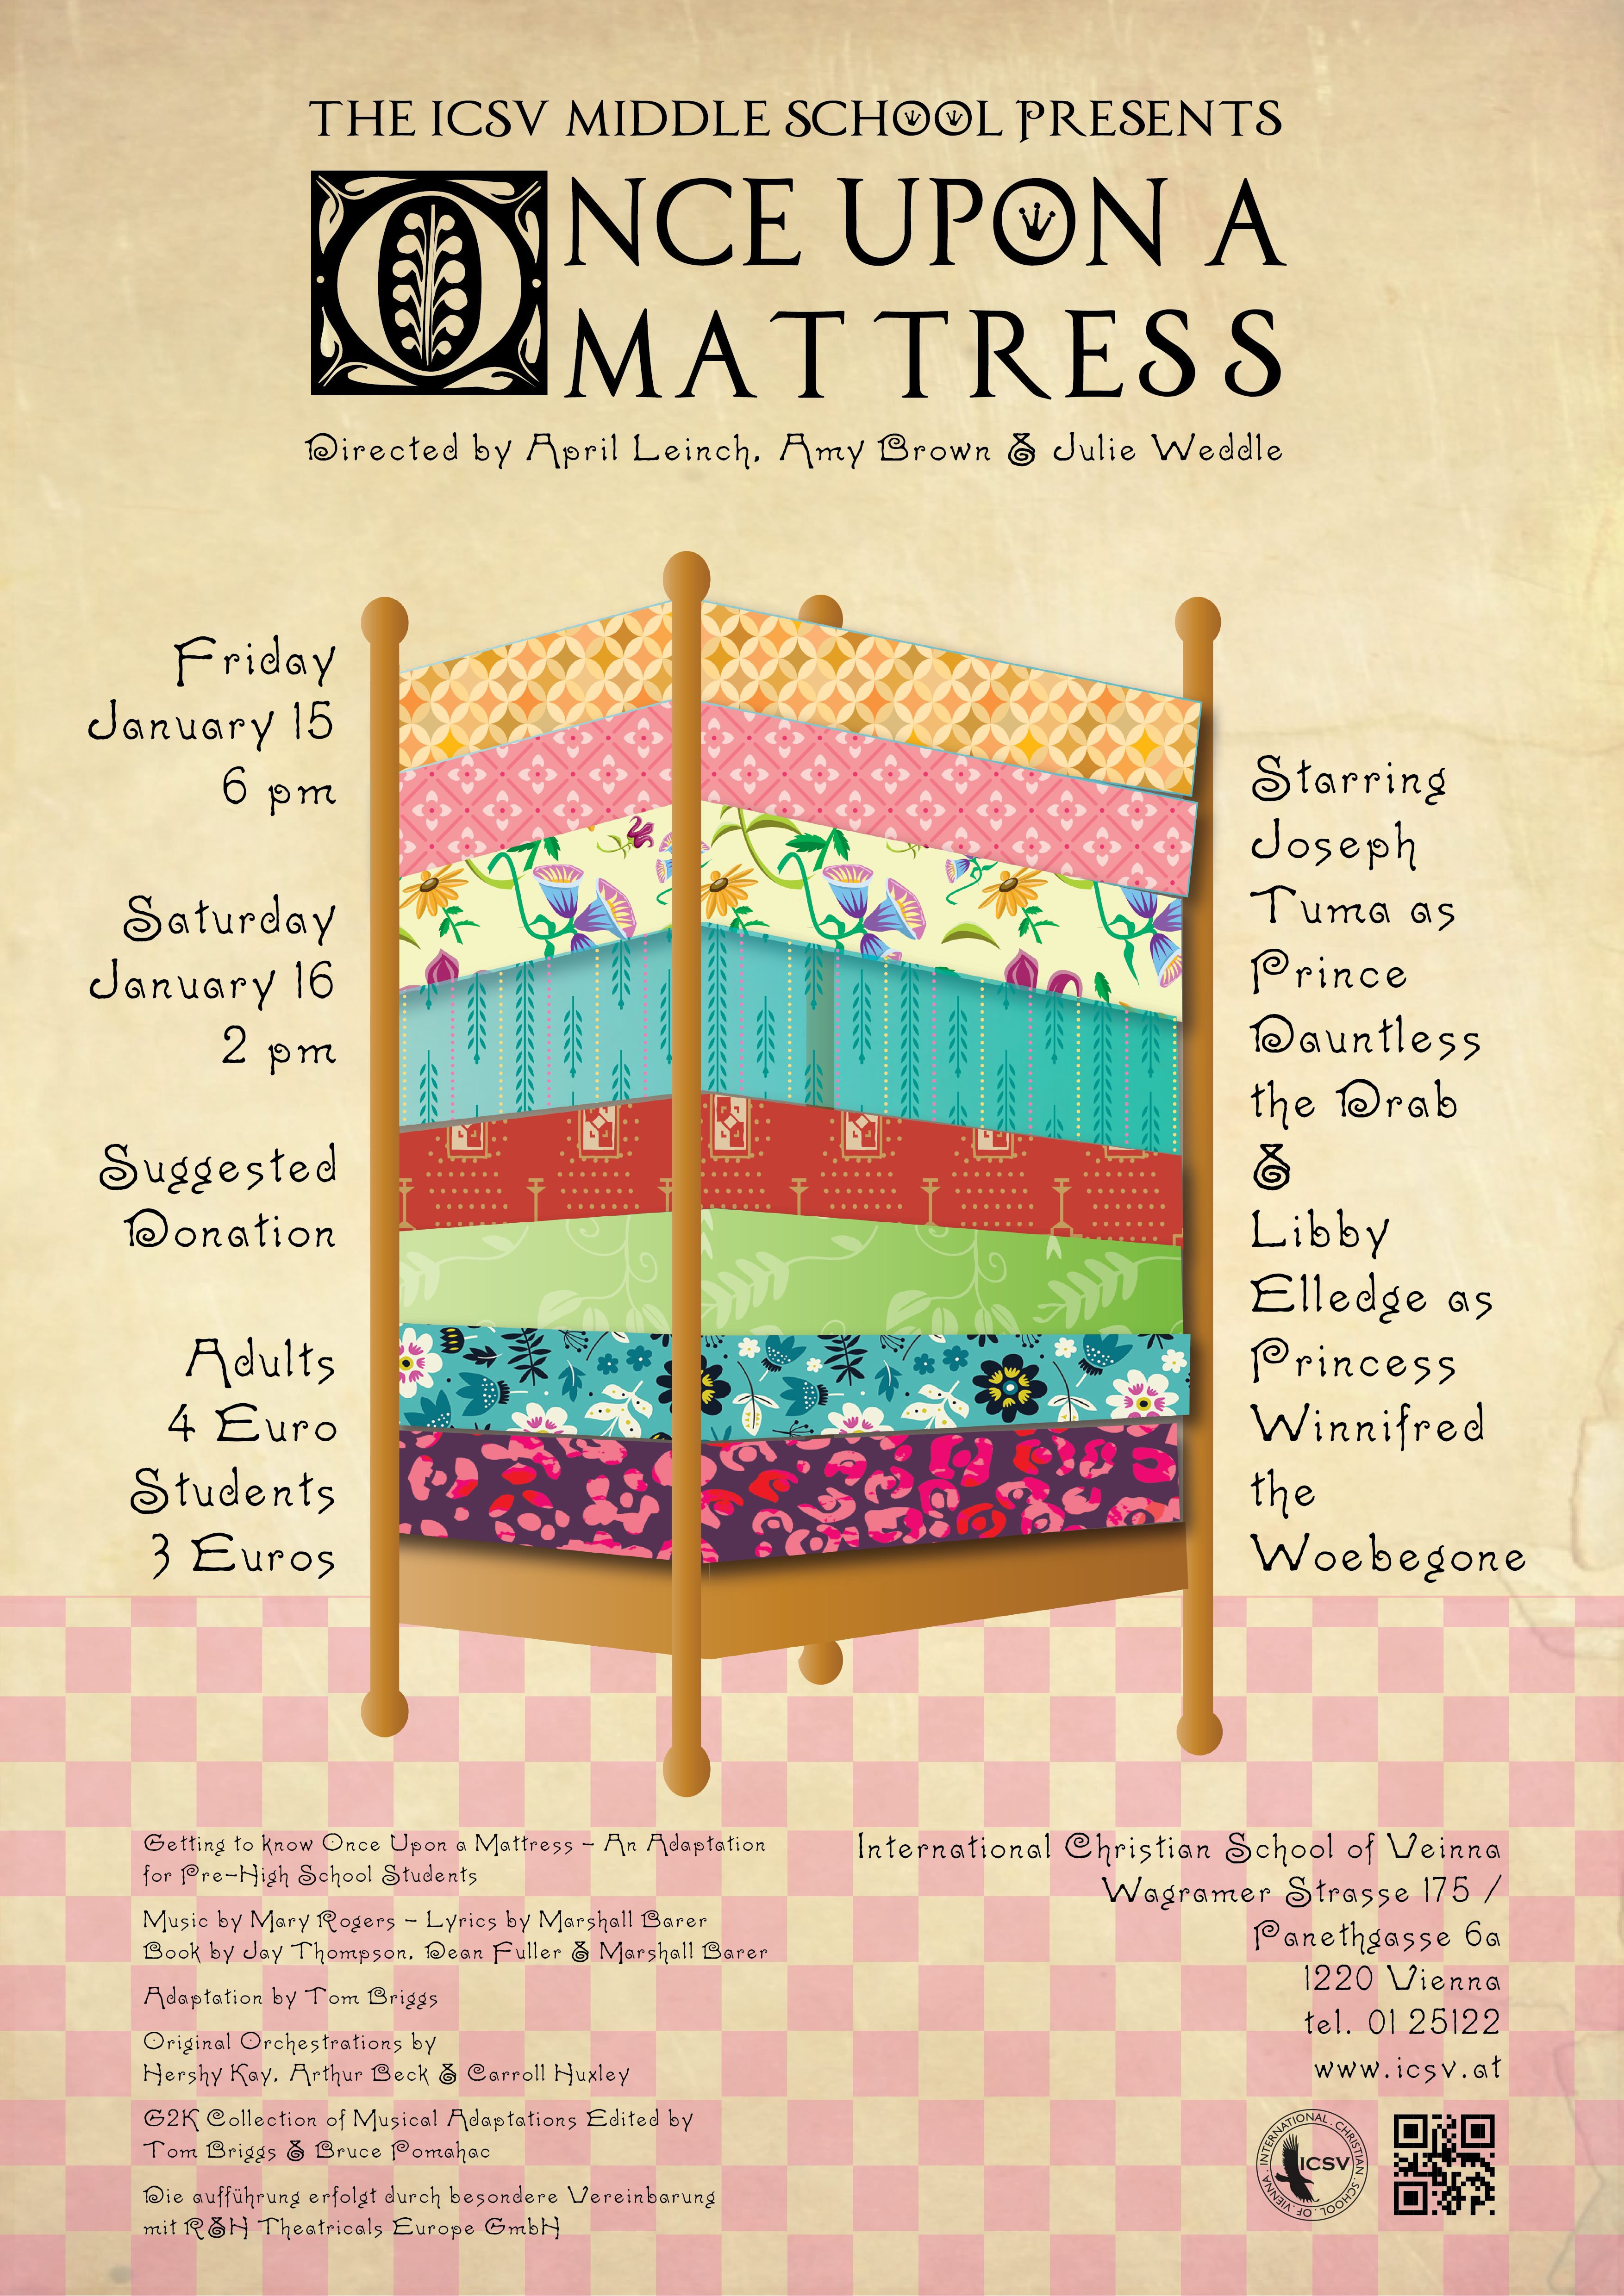 Latest Poster & Program – ICSV Middle School Presents: Once Upon a Mattress  – Dax Graphics☧